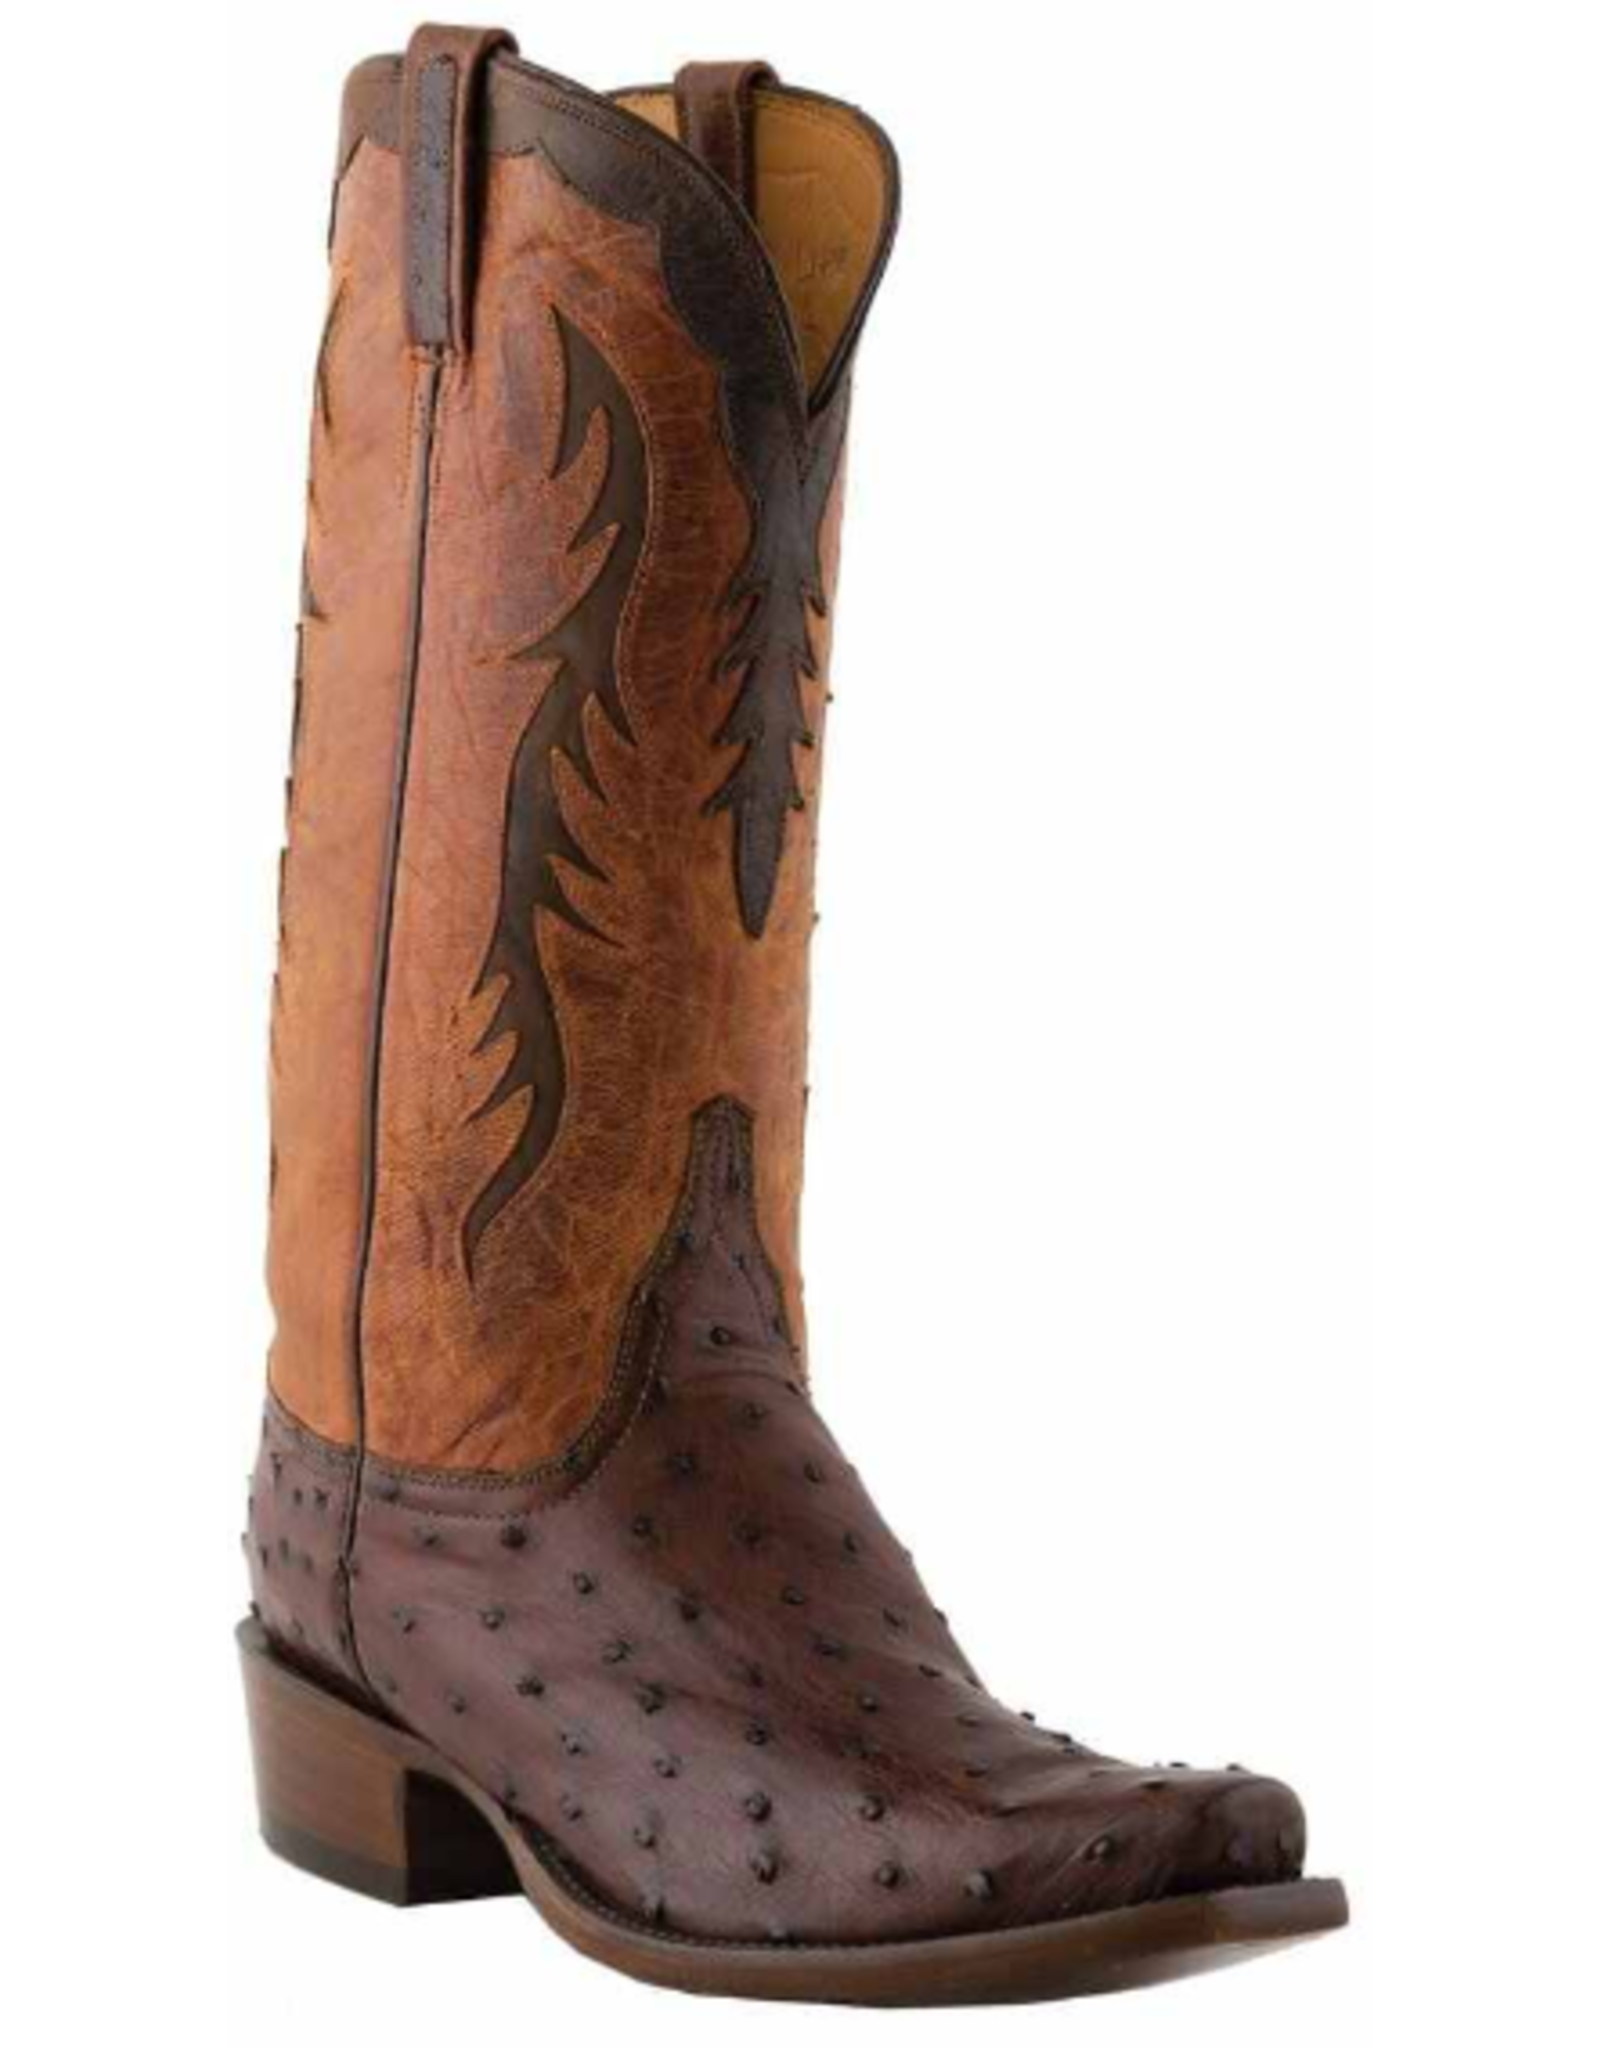 Lucchese Lucchese Classic Full Quill Ostrich Boots, 11D